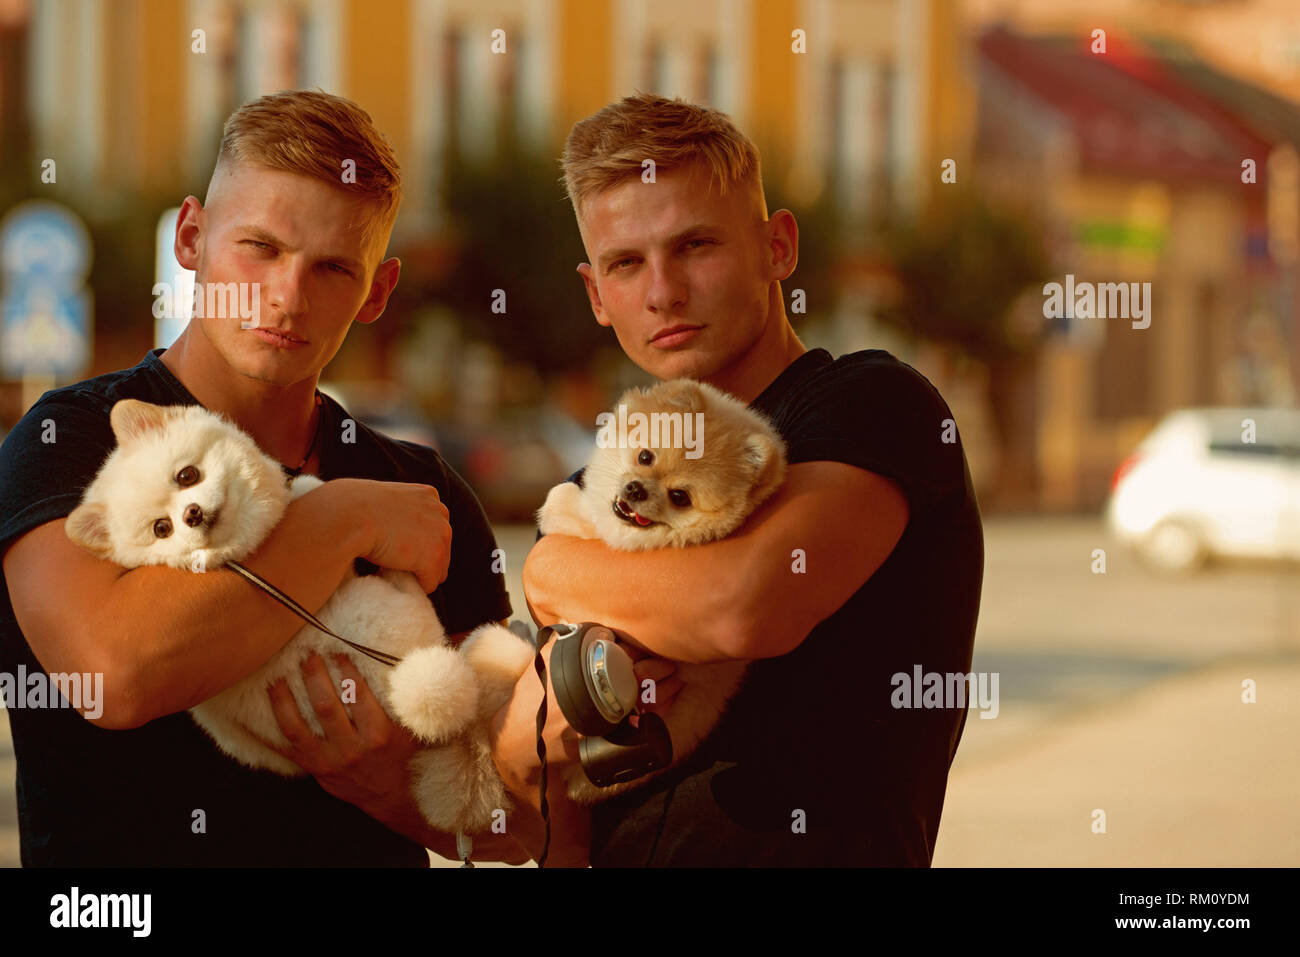 Always happy together. Muscular men with dog pets. Happy family on walk. Twins men hold pedigree dogs. Happy twins with muscular look. Spitz dogs love - Stock Image